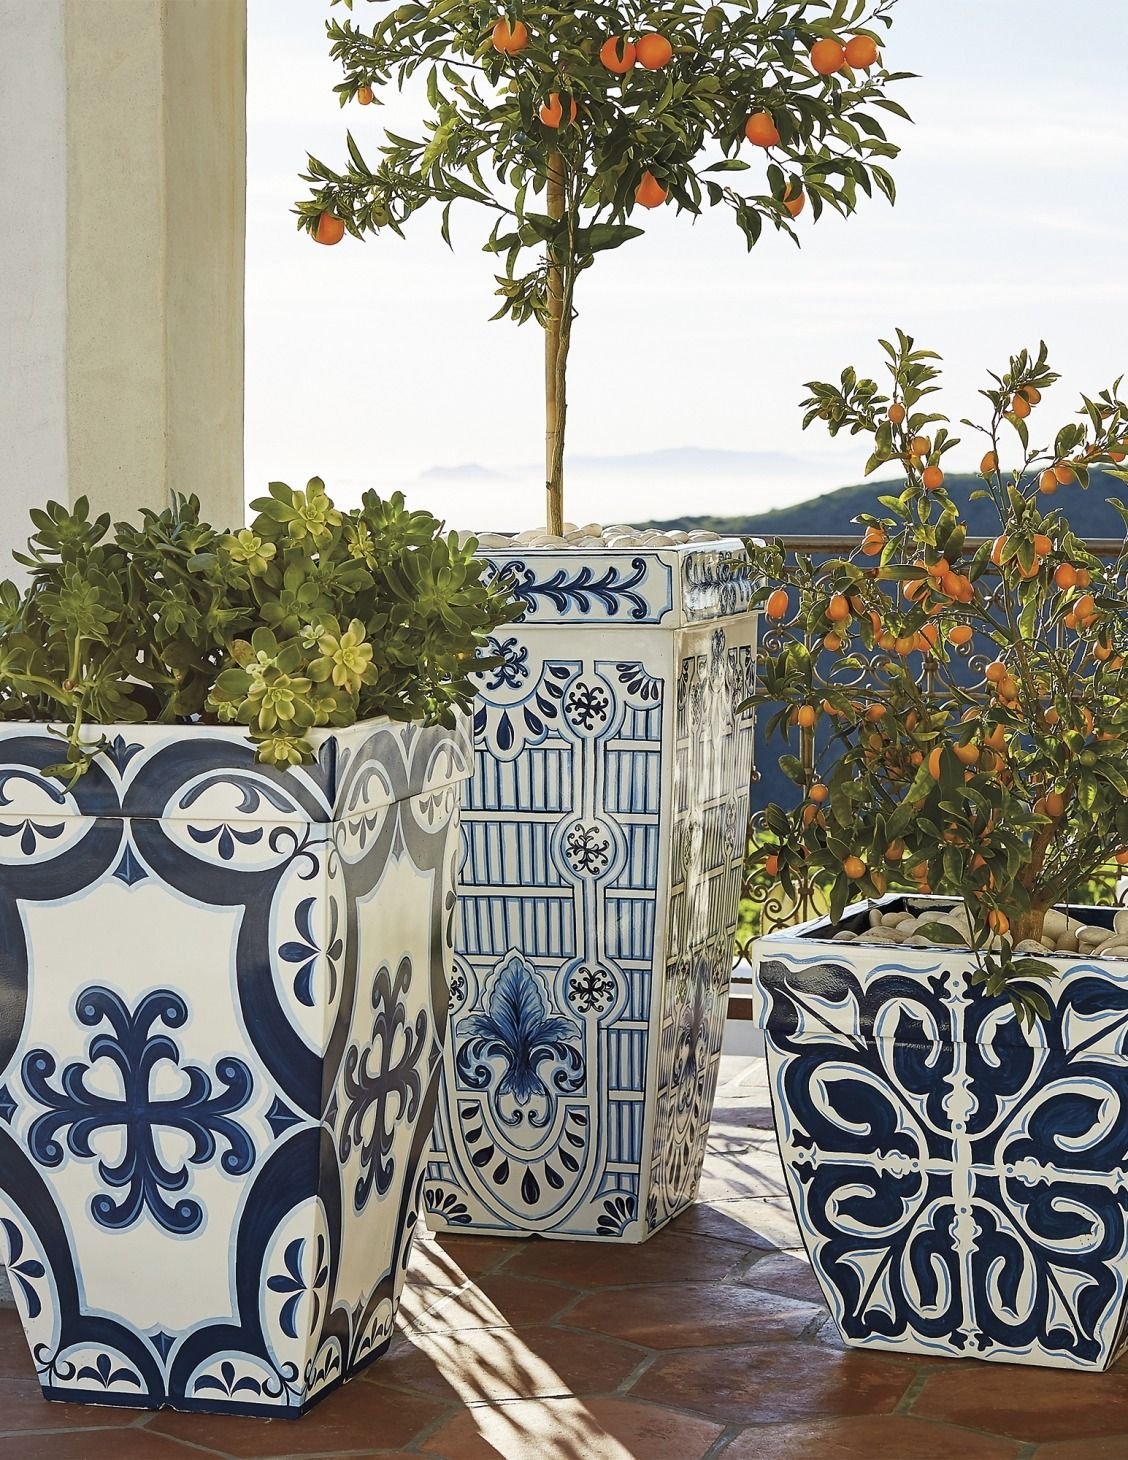 Santorini Patio Furniture: Garden, Planters, Decor